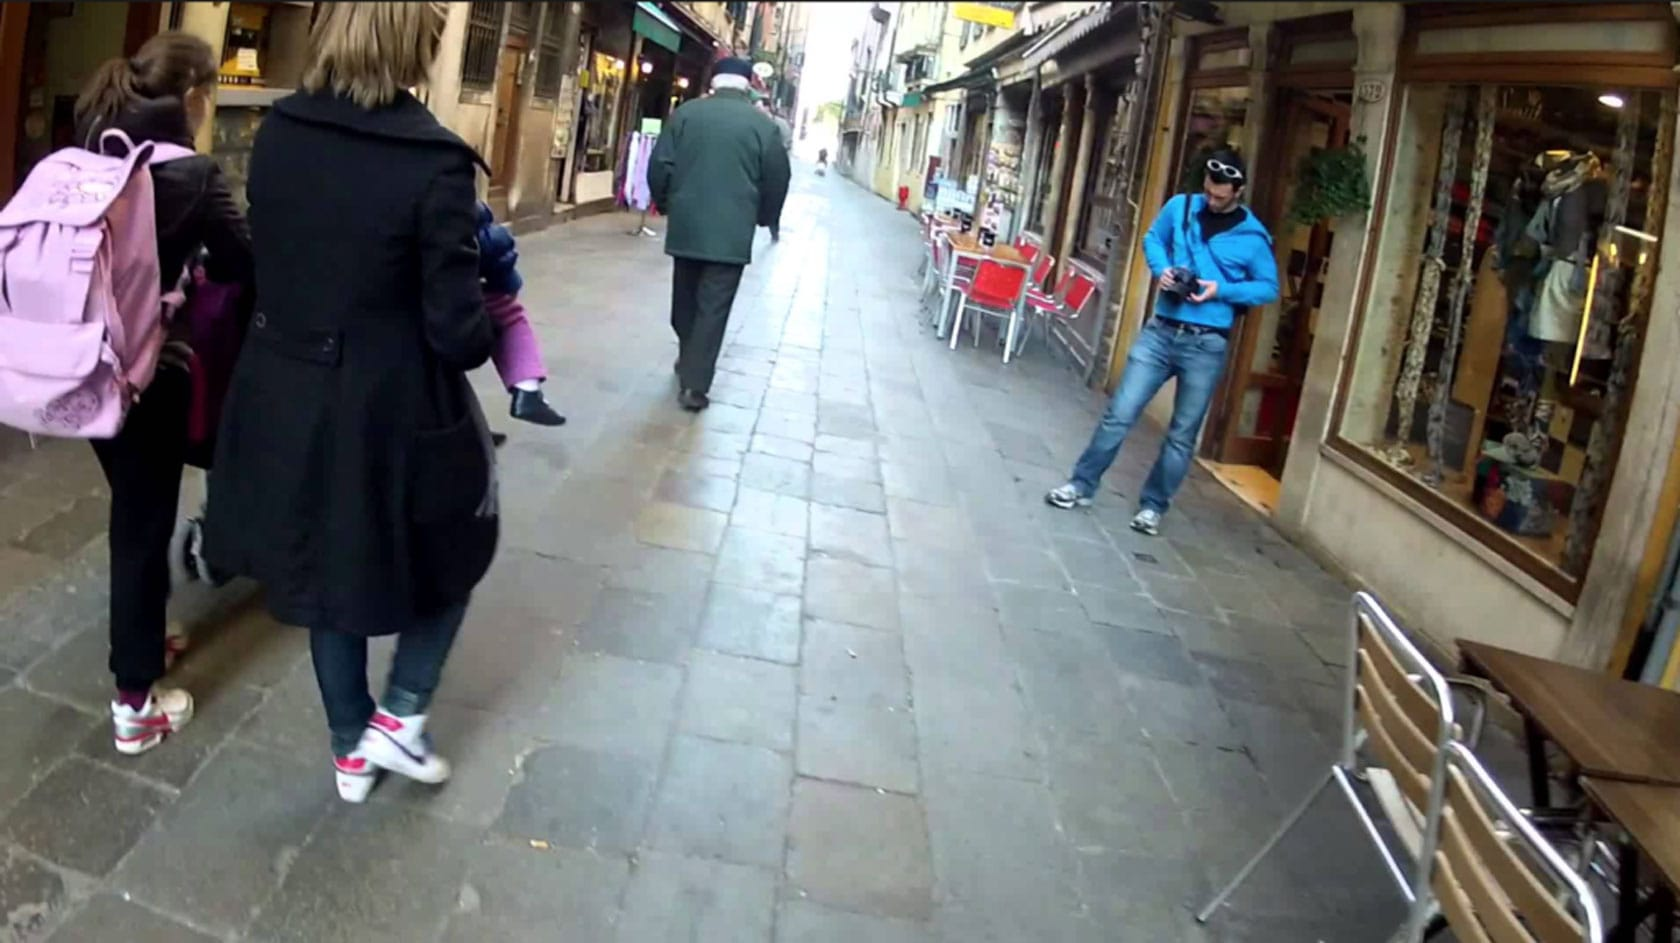 A still of a street scene from a POV street phtotography vlog video recorded with an action camera